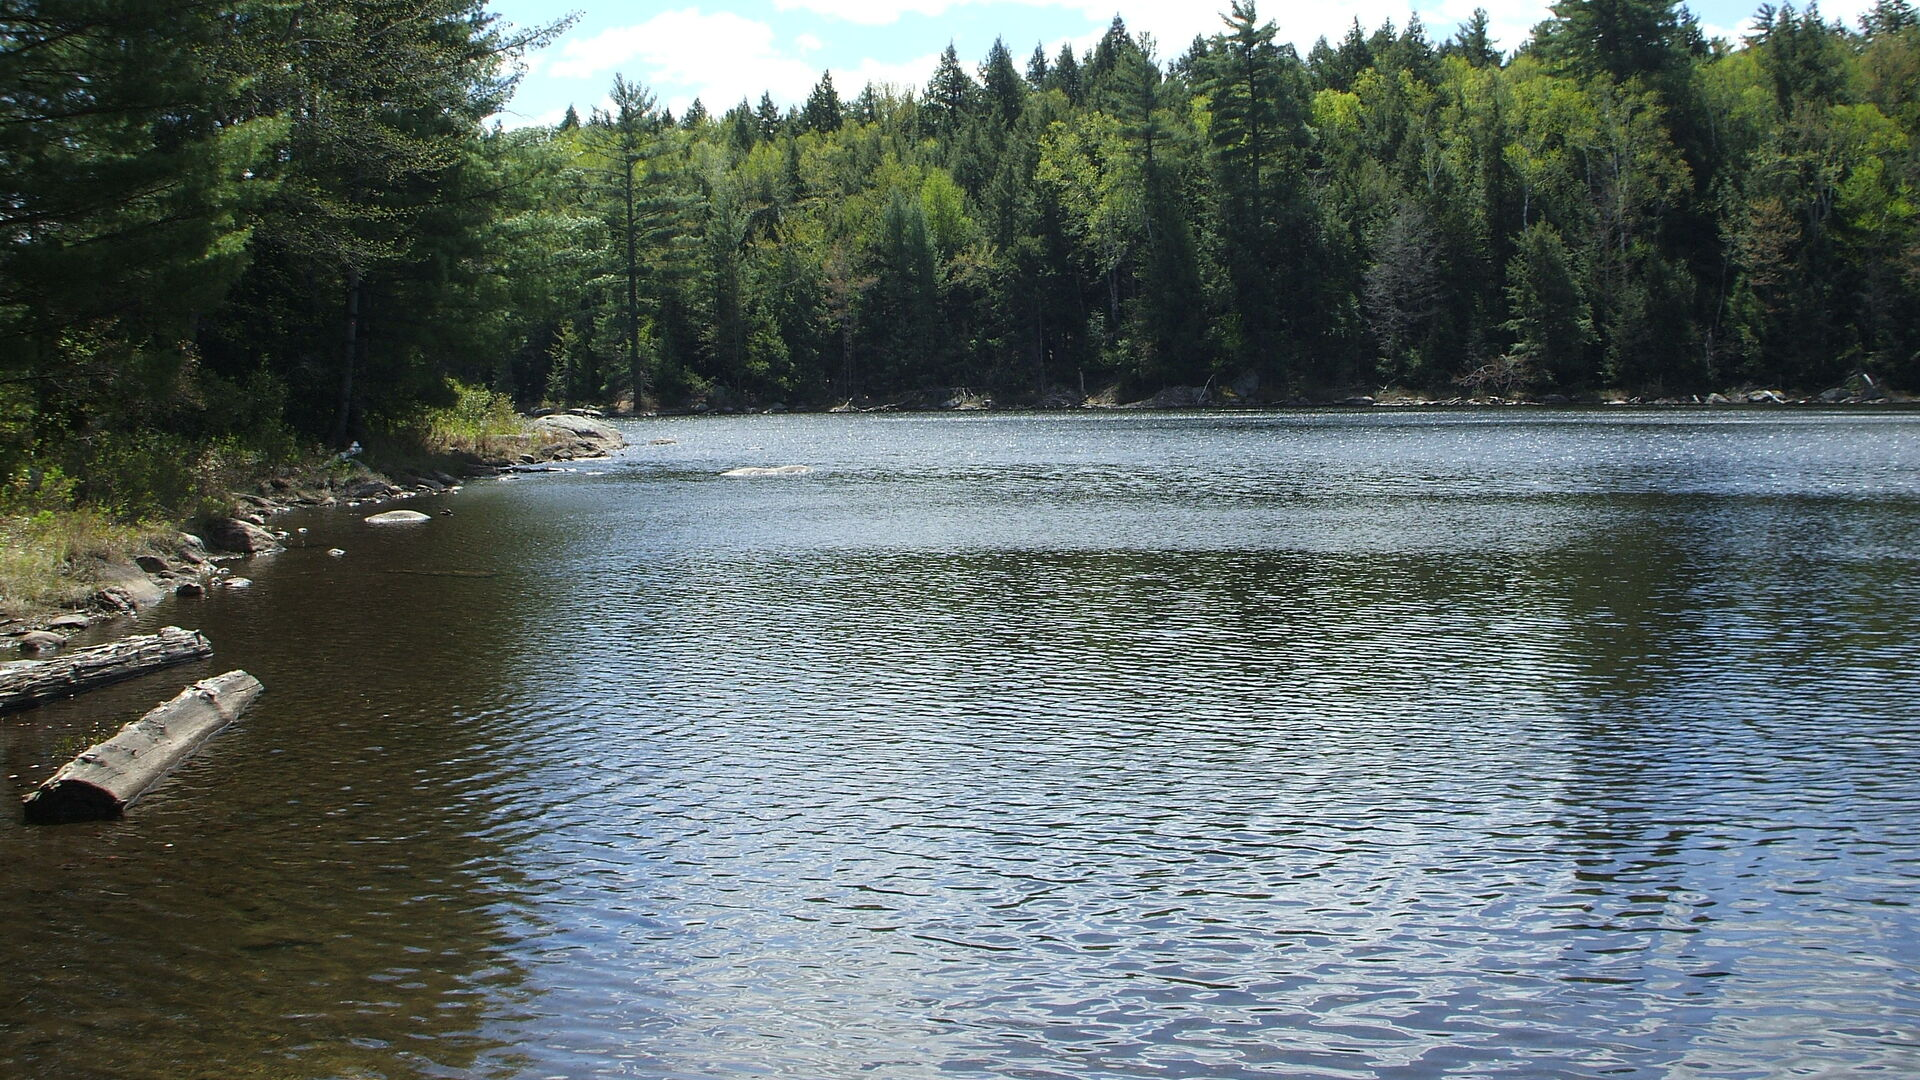 This is a great destination for hiking, paddling, fishing, and its also a winter trail.